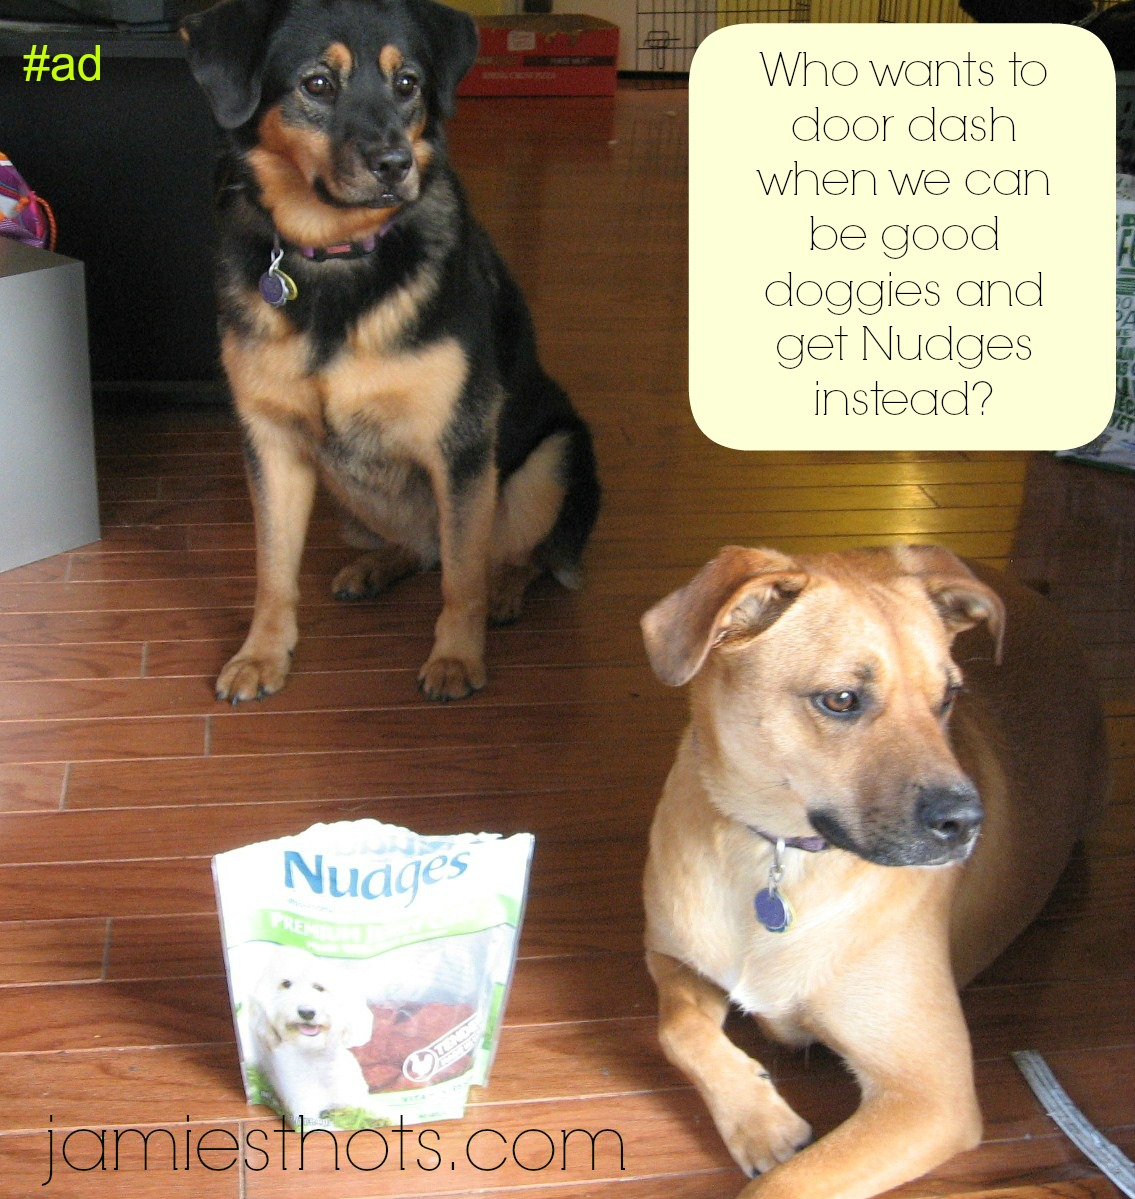 Keeping the Smith puppies safe on Independence Day with Nudges dog treats